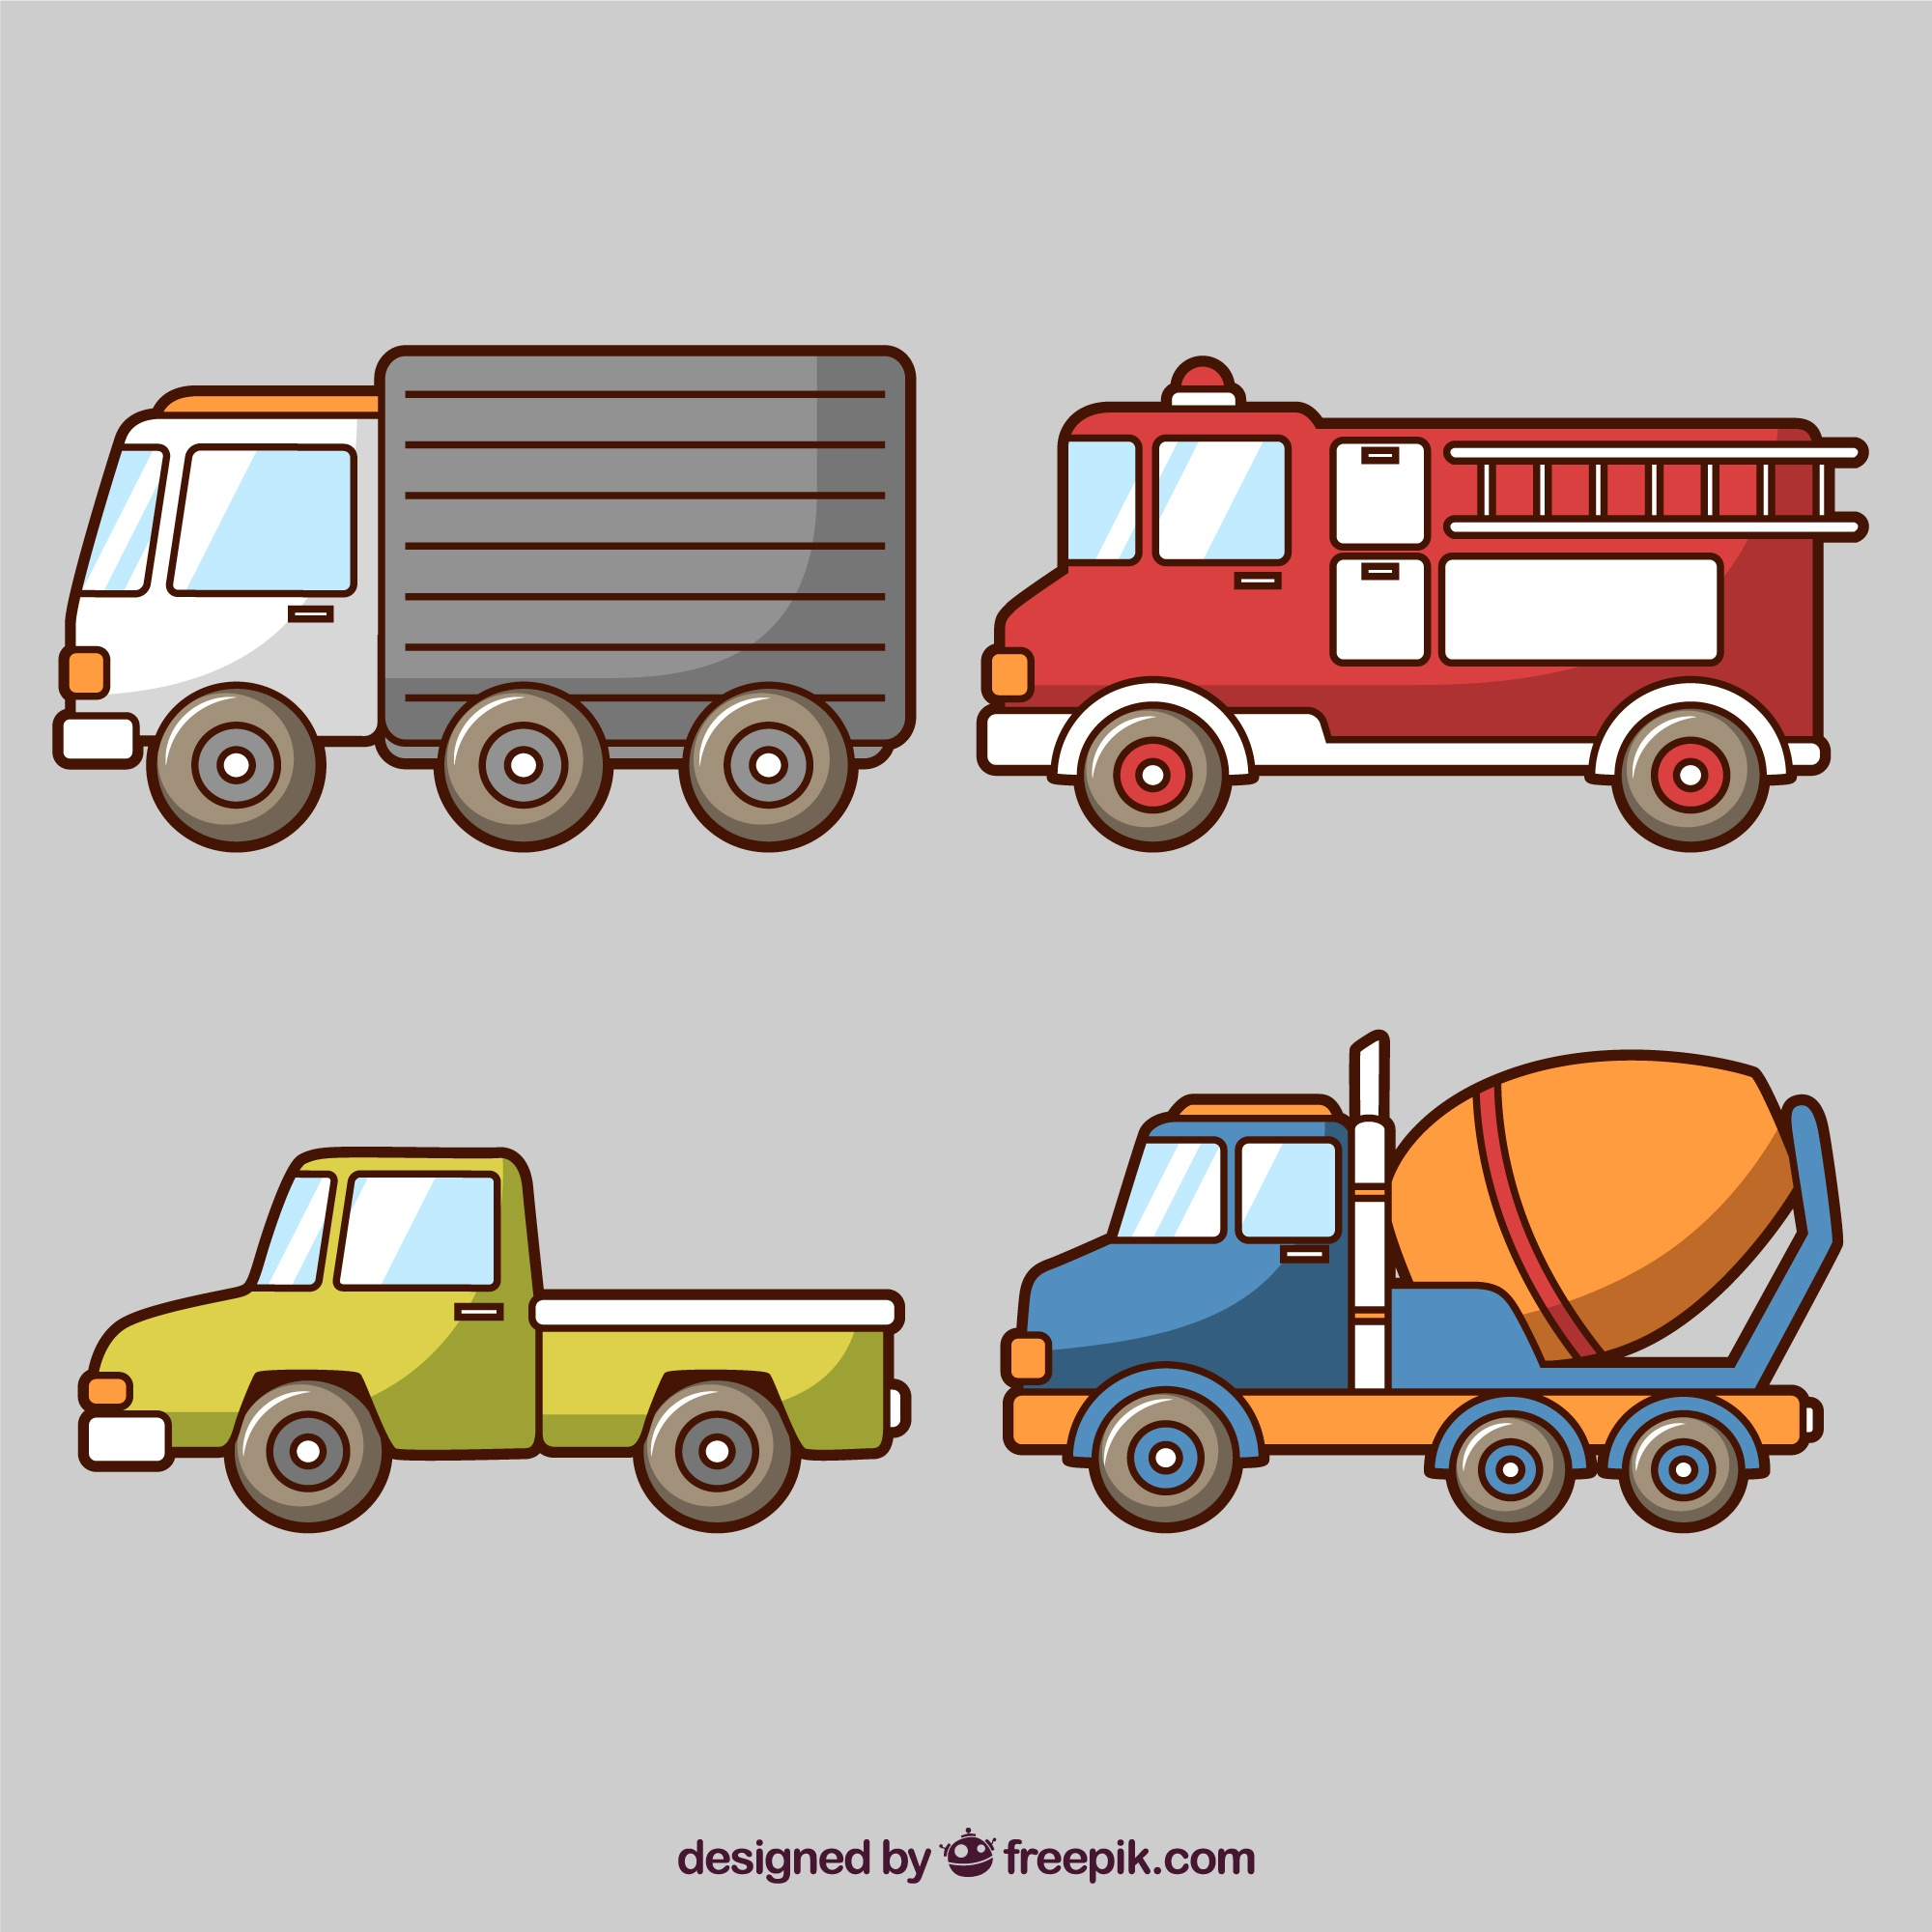 Several colored vehicles